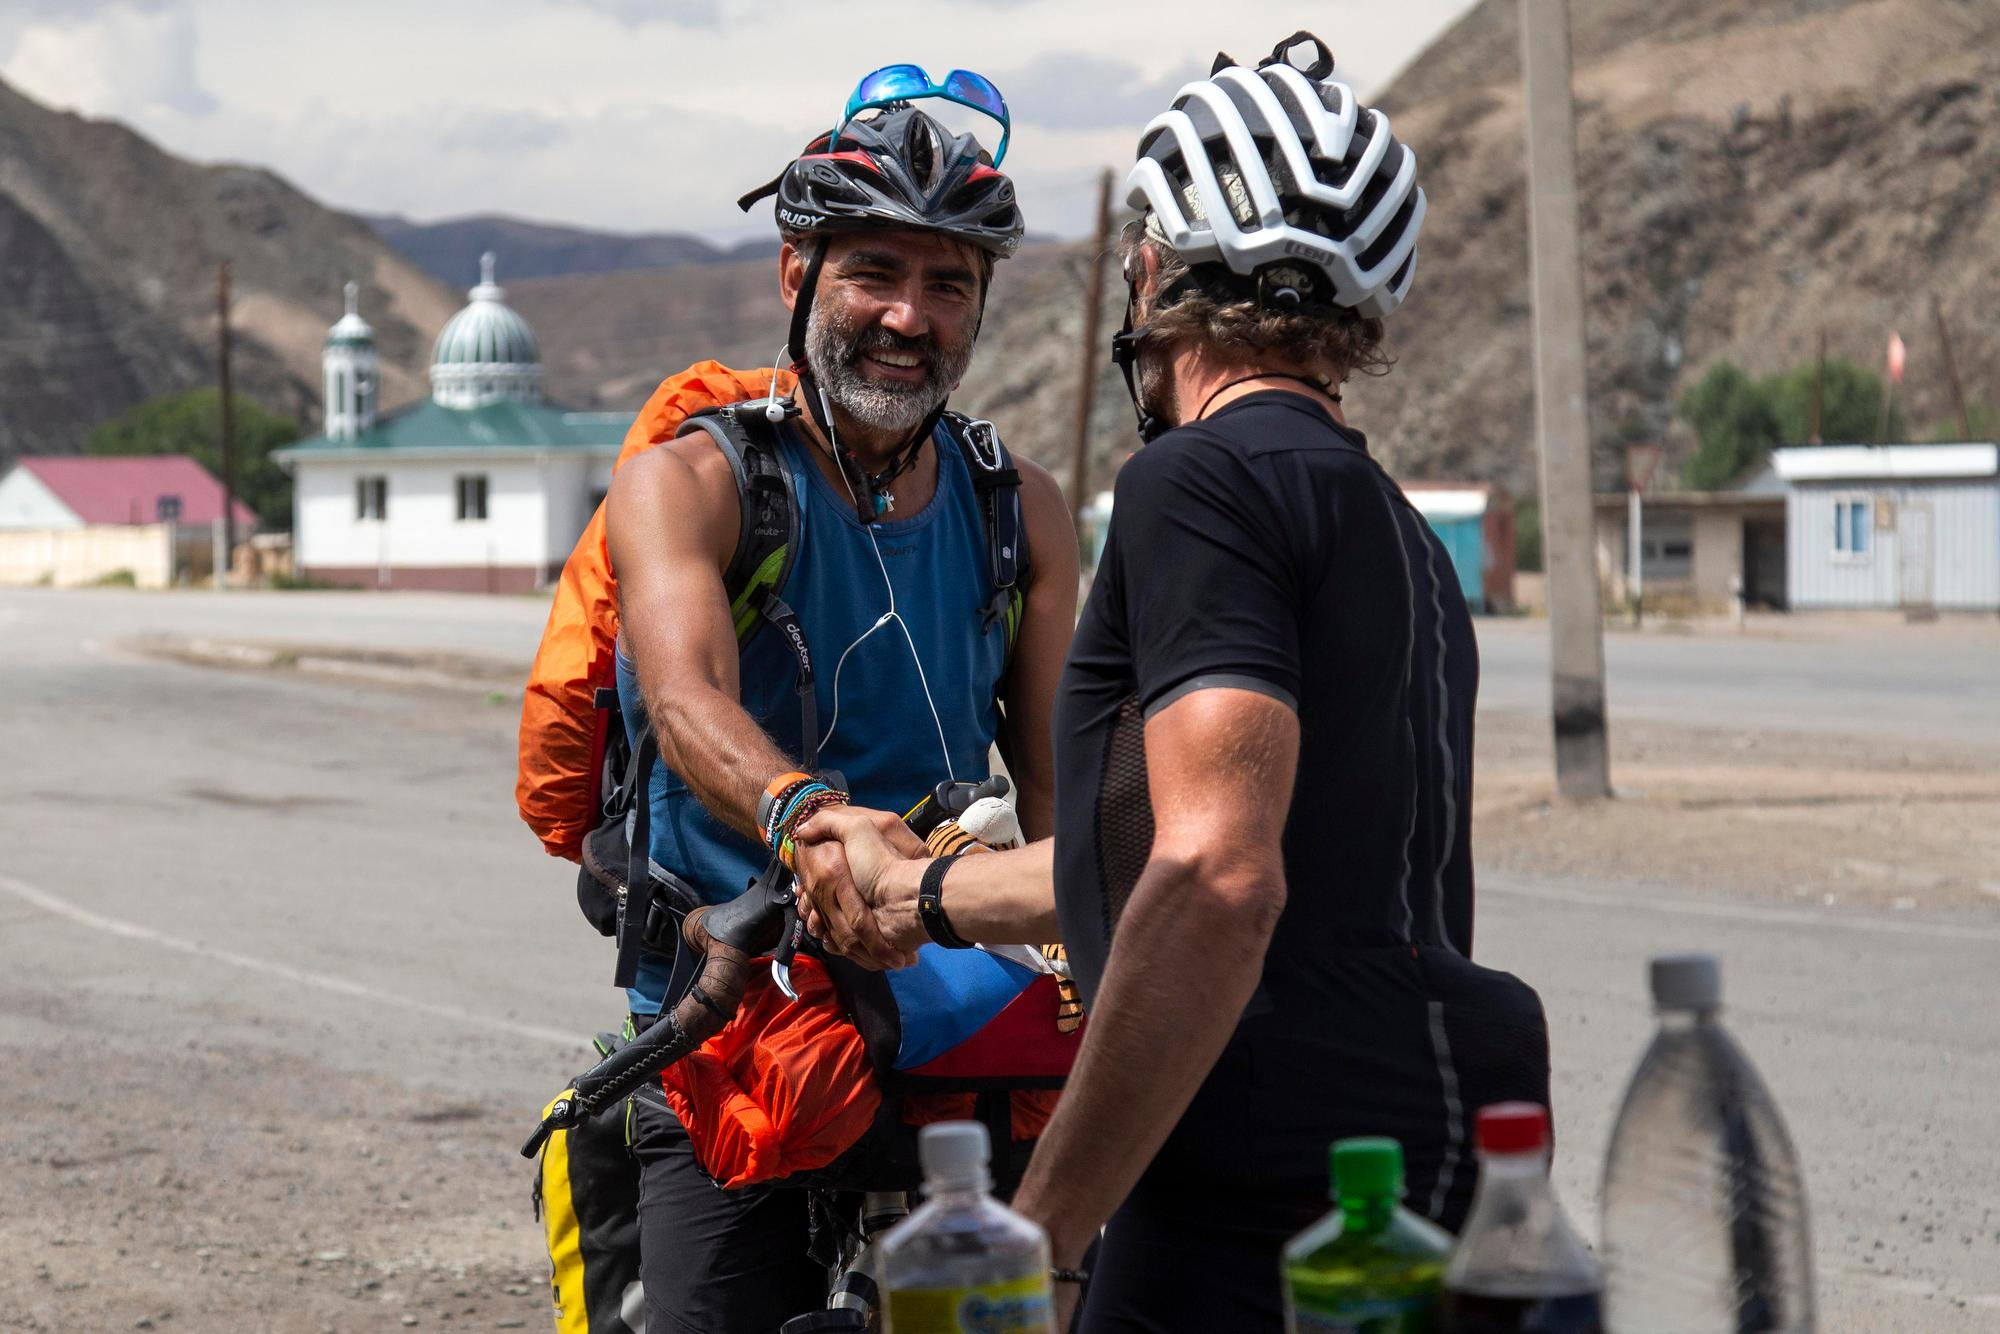 Jay Petervary meets a fan before descending into Kochkor. (Rugile Kaladyte)